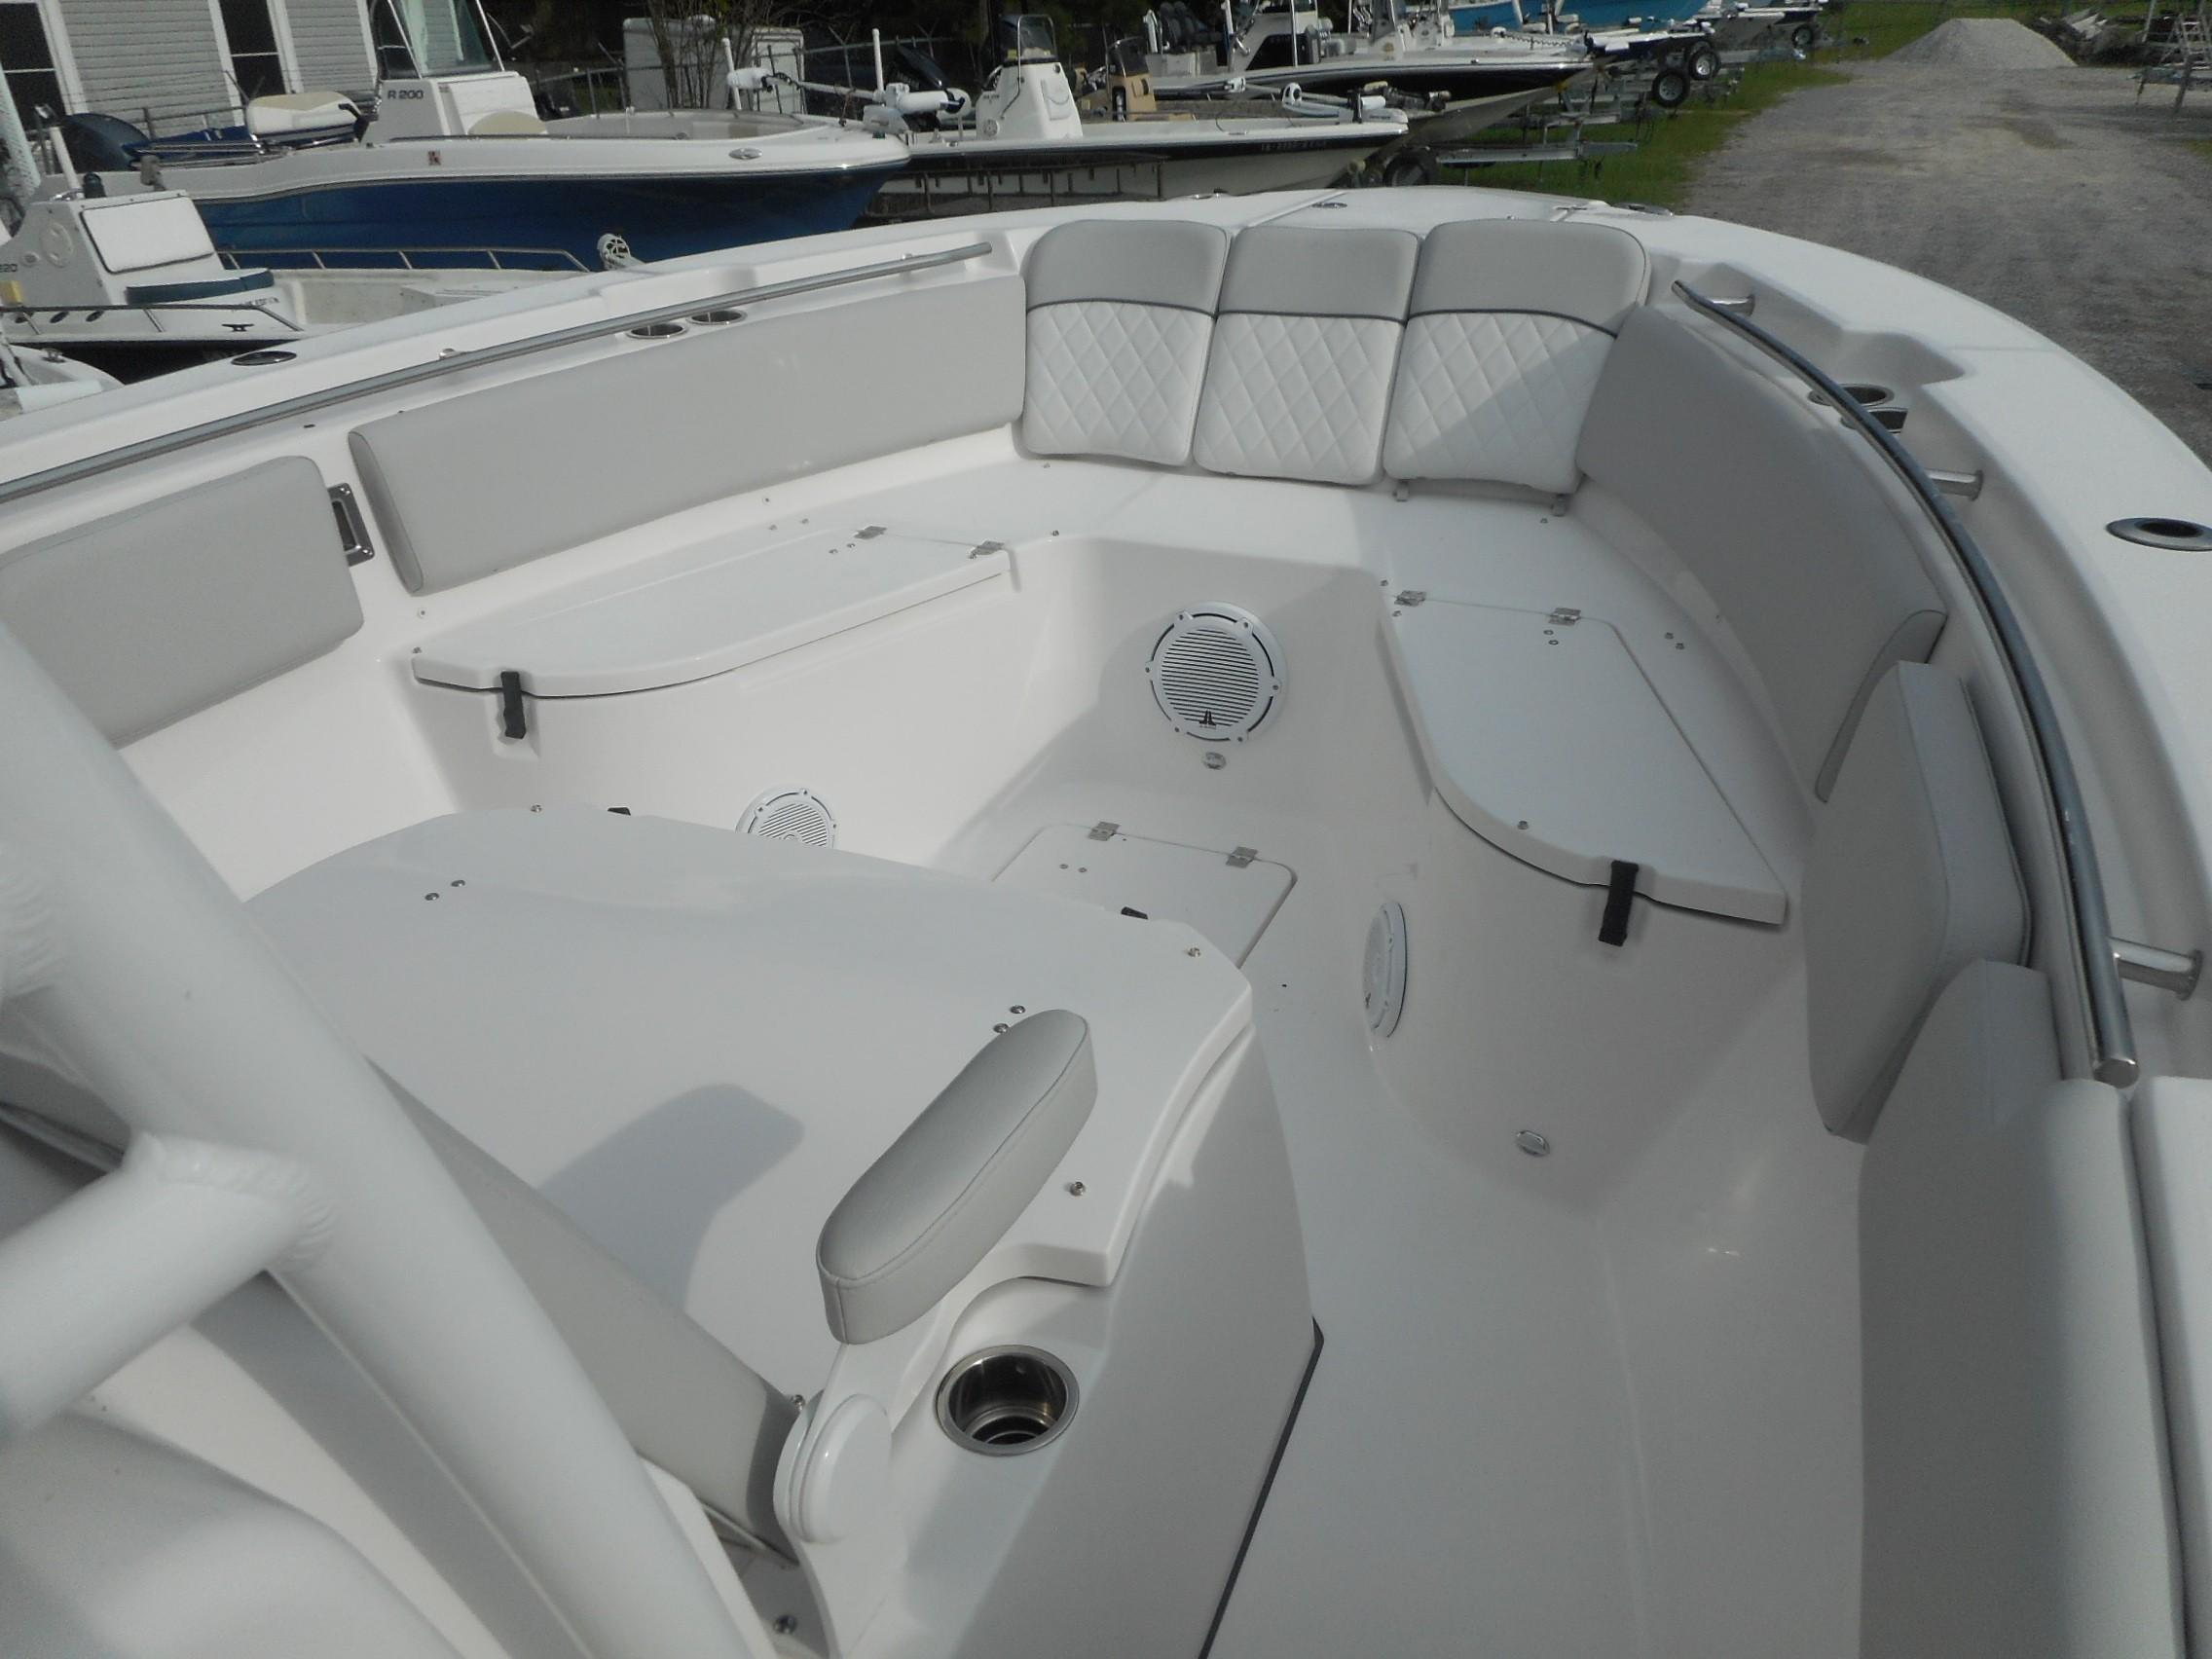 New  2020 28' Sea Fox 288 Commander Center Console in Slidell, Louisiana